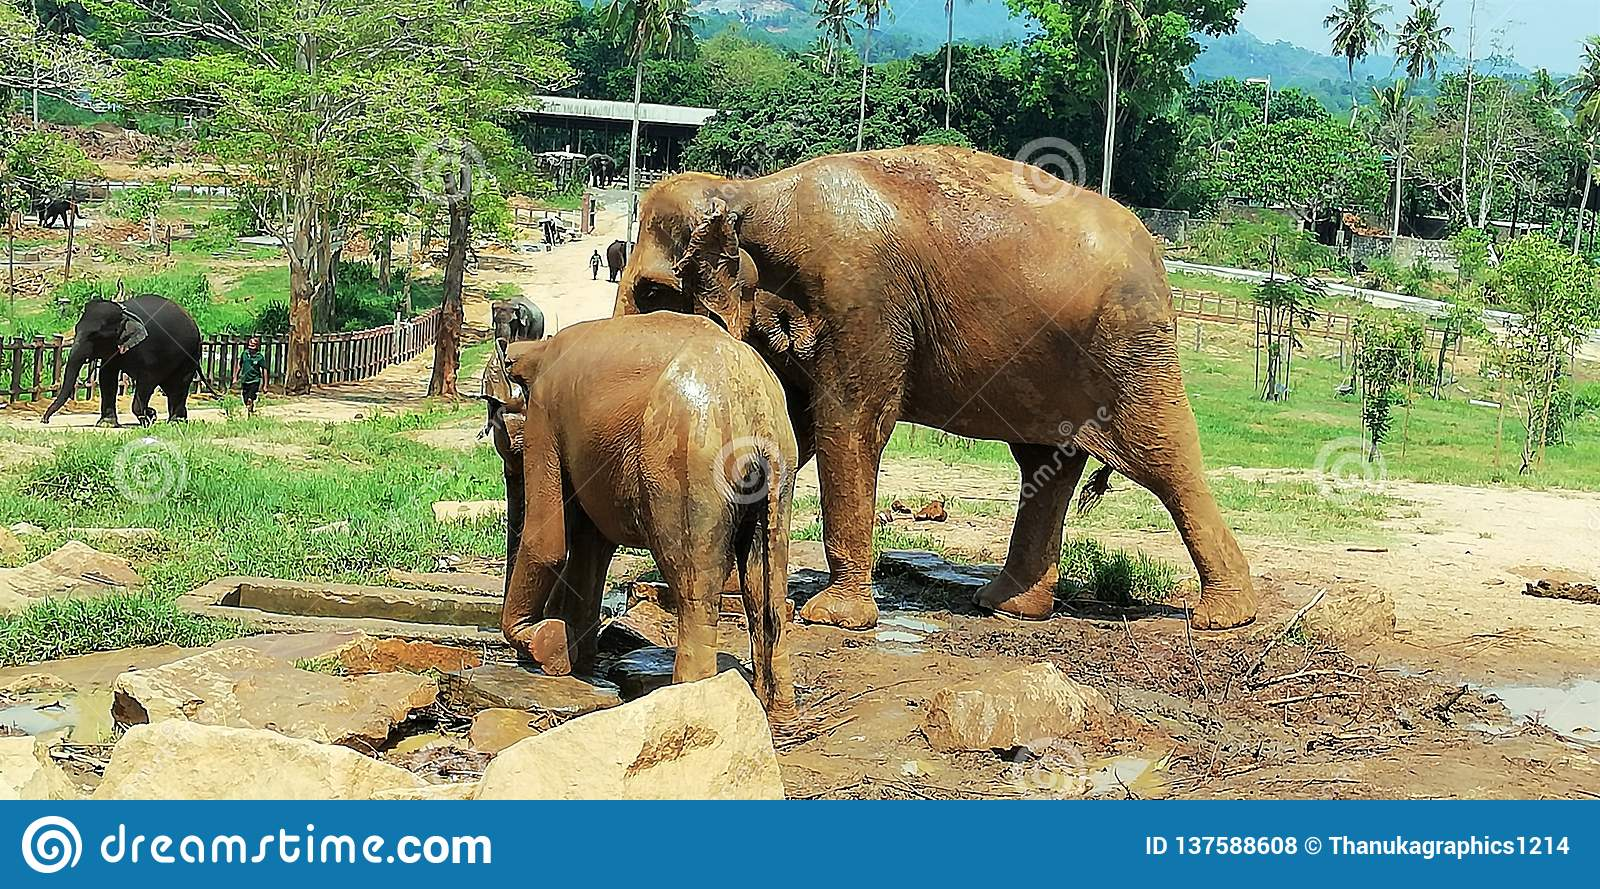 A Baby eliphant with mother